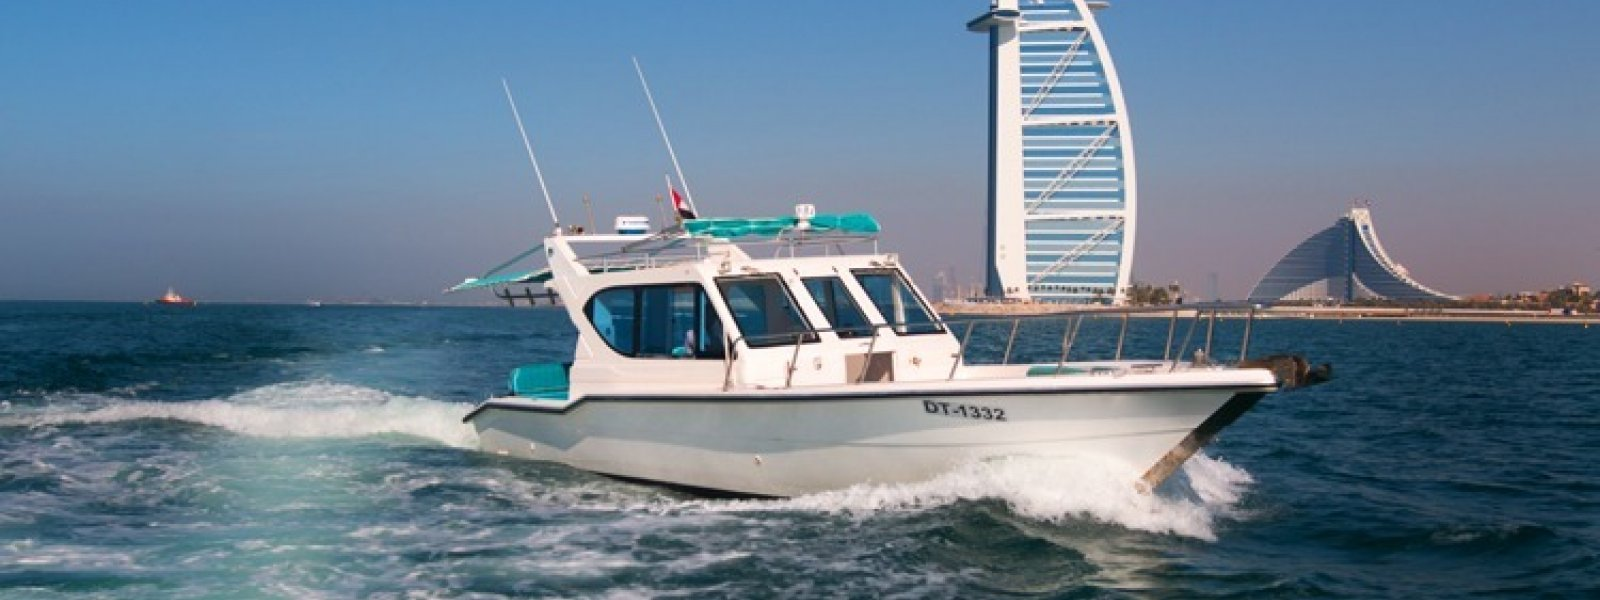 Cozmo 41 - Seamaster American Boat - Good For Fishing - Burj Al Arab at the backdrop